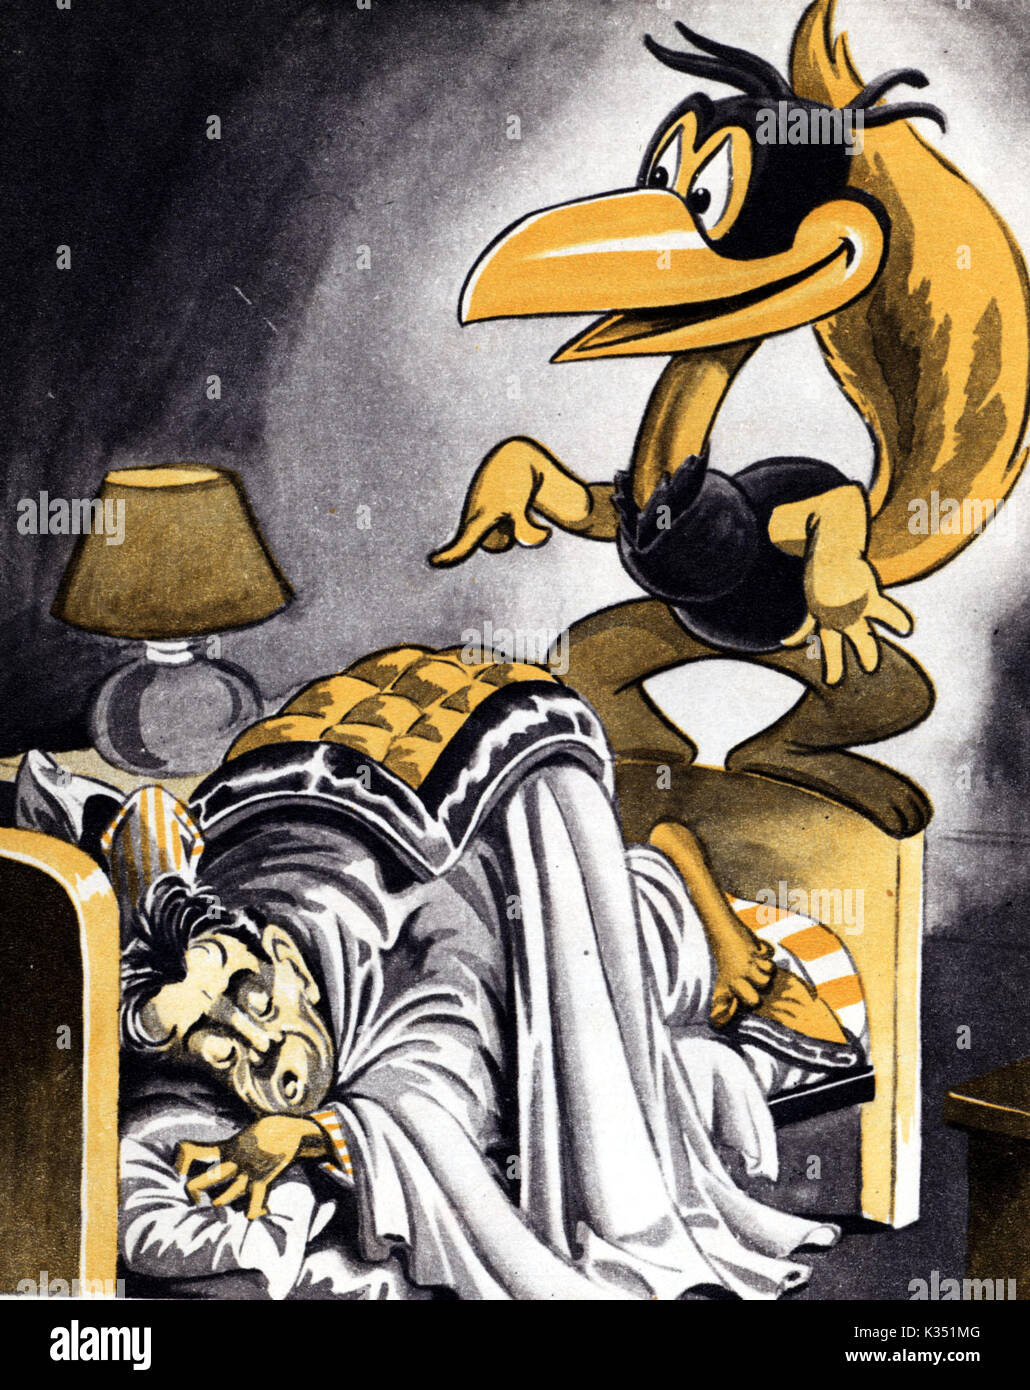 THE ARTIST'S NIGHTMARE   DAVID HANDS, producer of the Animaland series having a nightmare about CORNY CROW - Stock Image